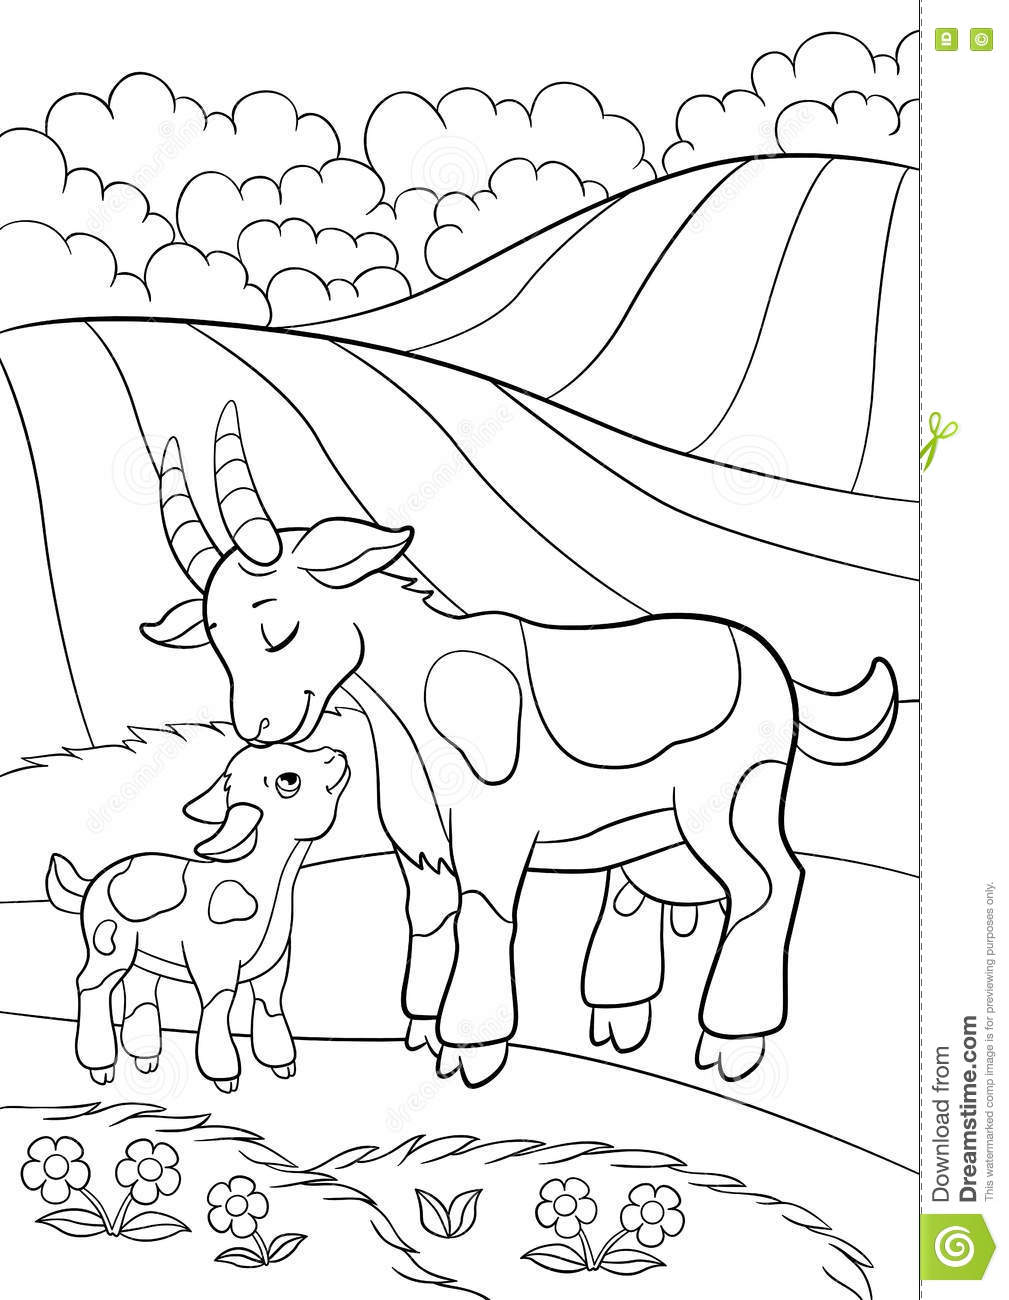 coloring goat hungry goat eating grass coloring pages color luna coloring goat